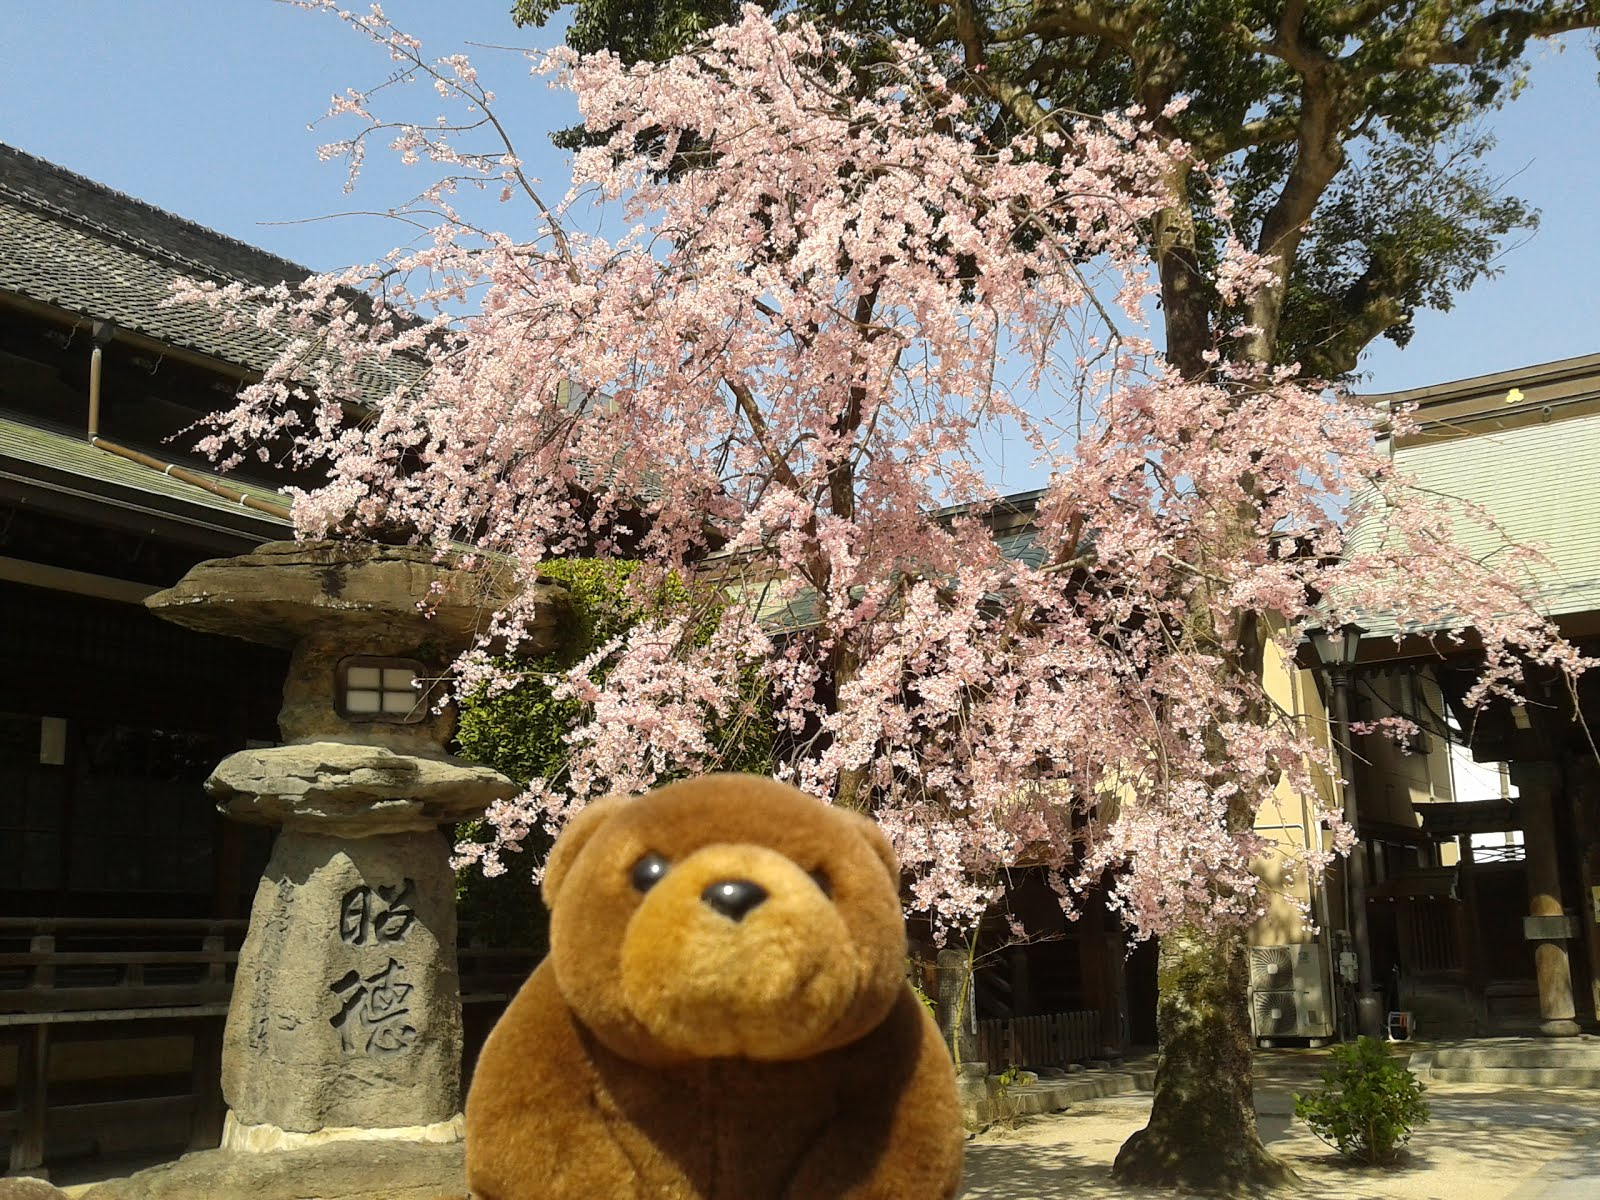 Teddy in Kushida Shrine, Fukuoka, Japan